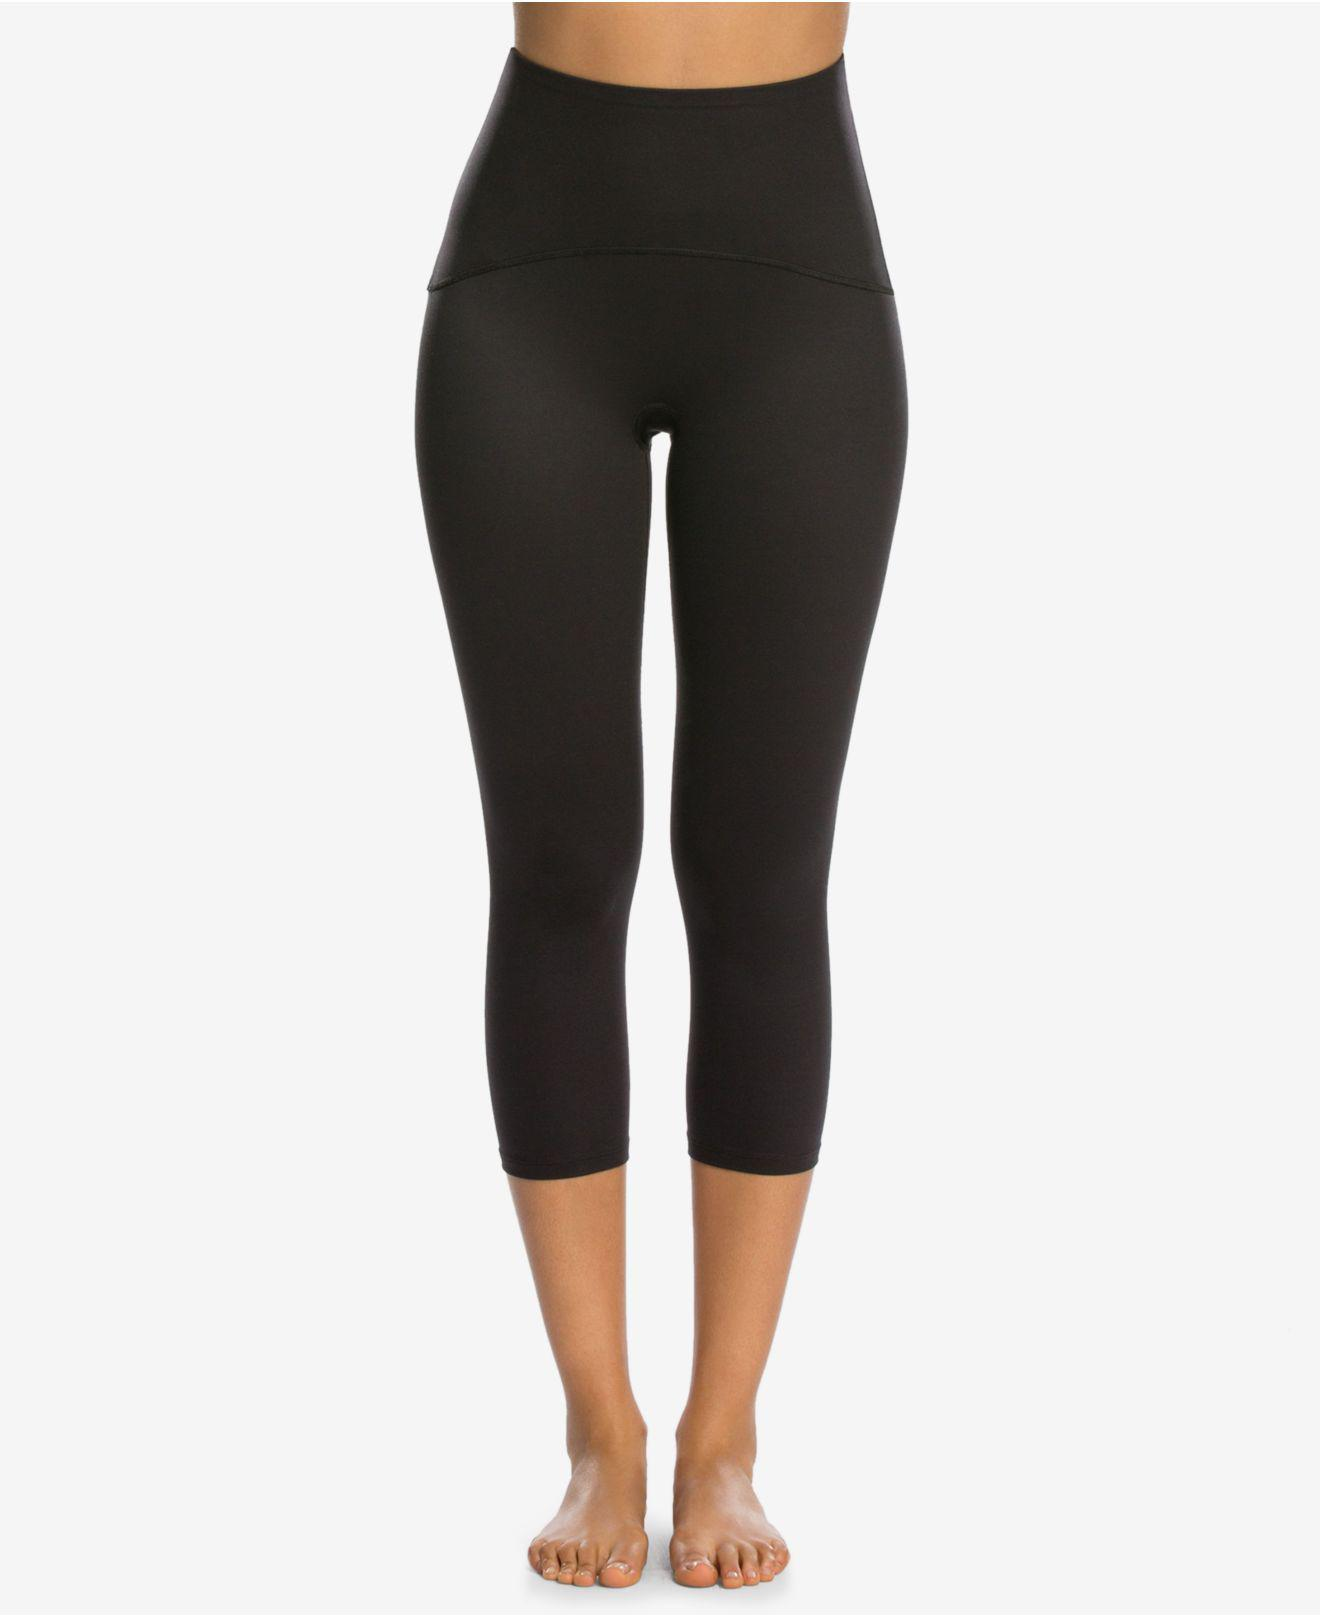 39782cfd80887e Lyst - Spanx Women's Active Shaping Cropped Compression Leggings in ...